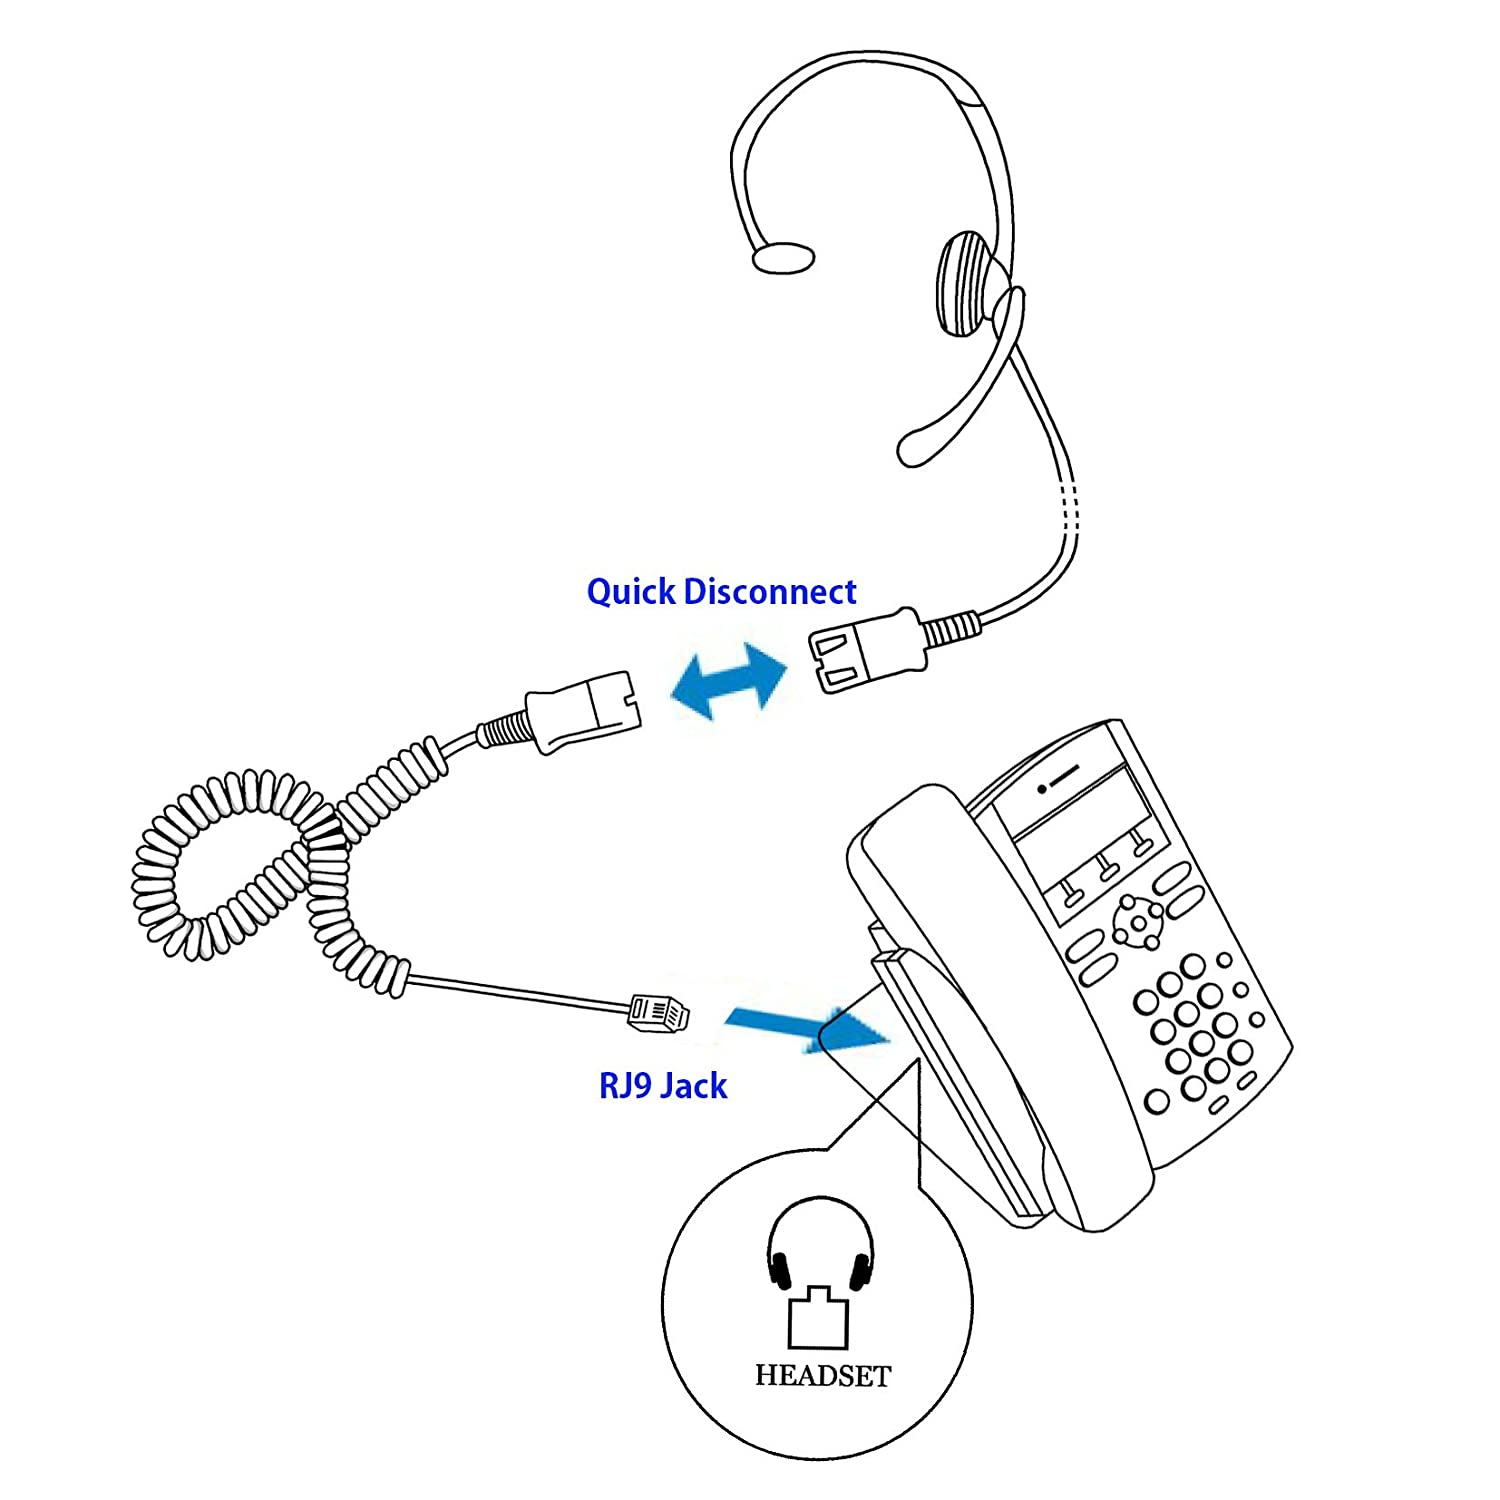 Cisco Headsets Rj9 Wiring Diagram Wiring Schematic Diagram